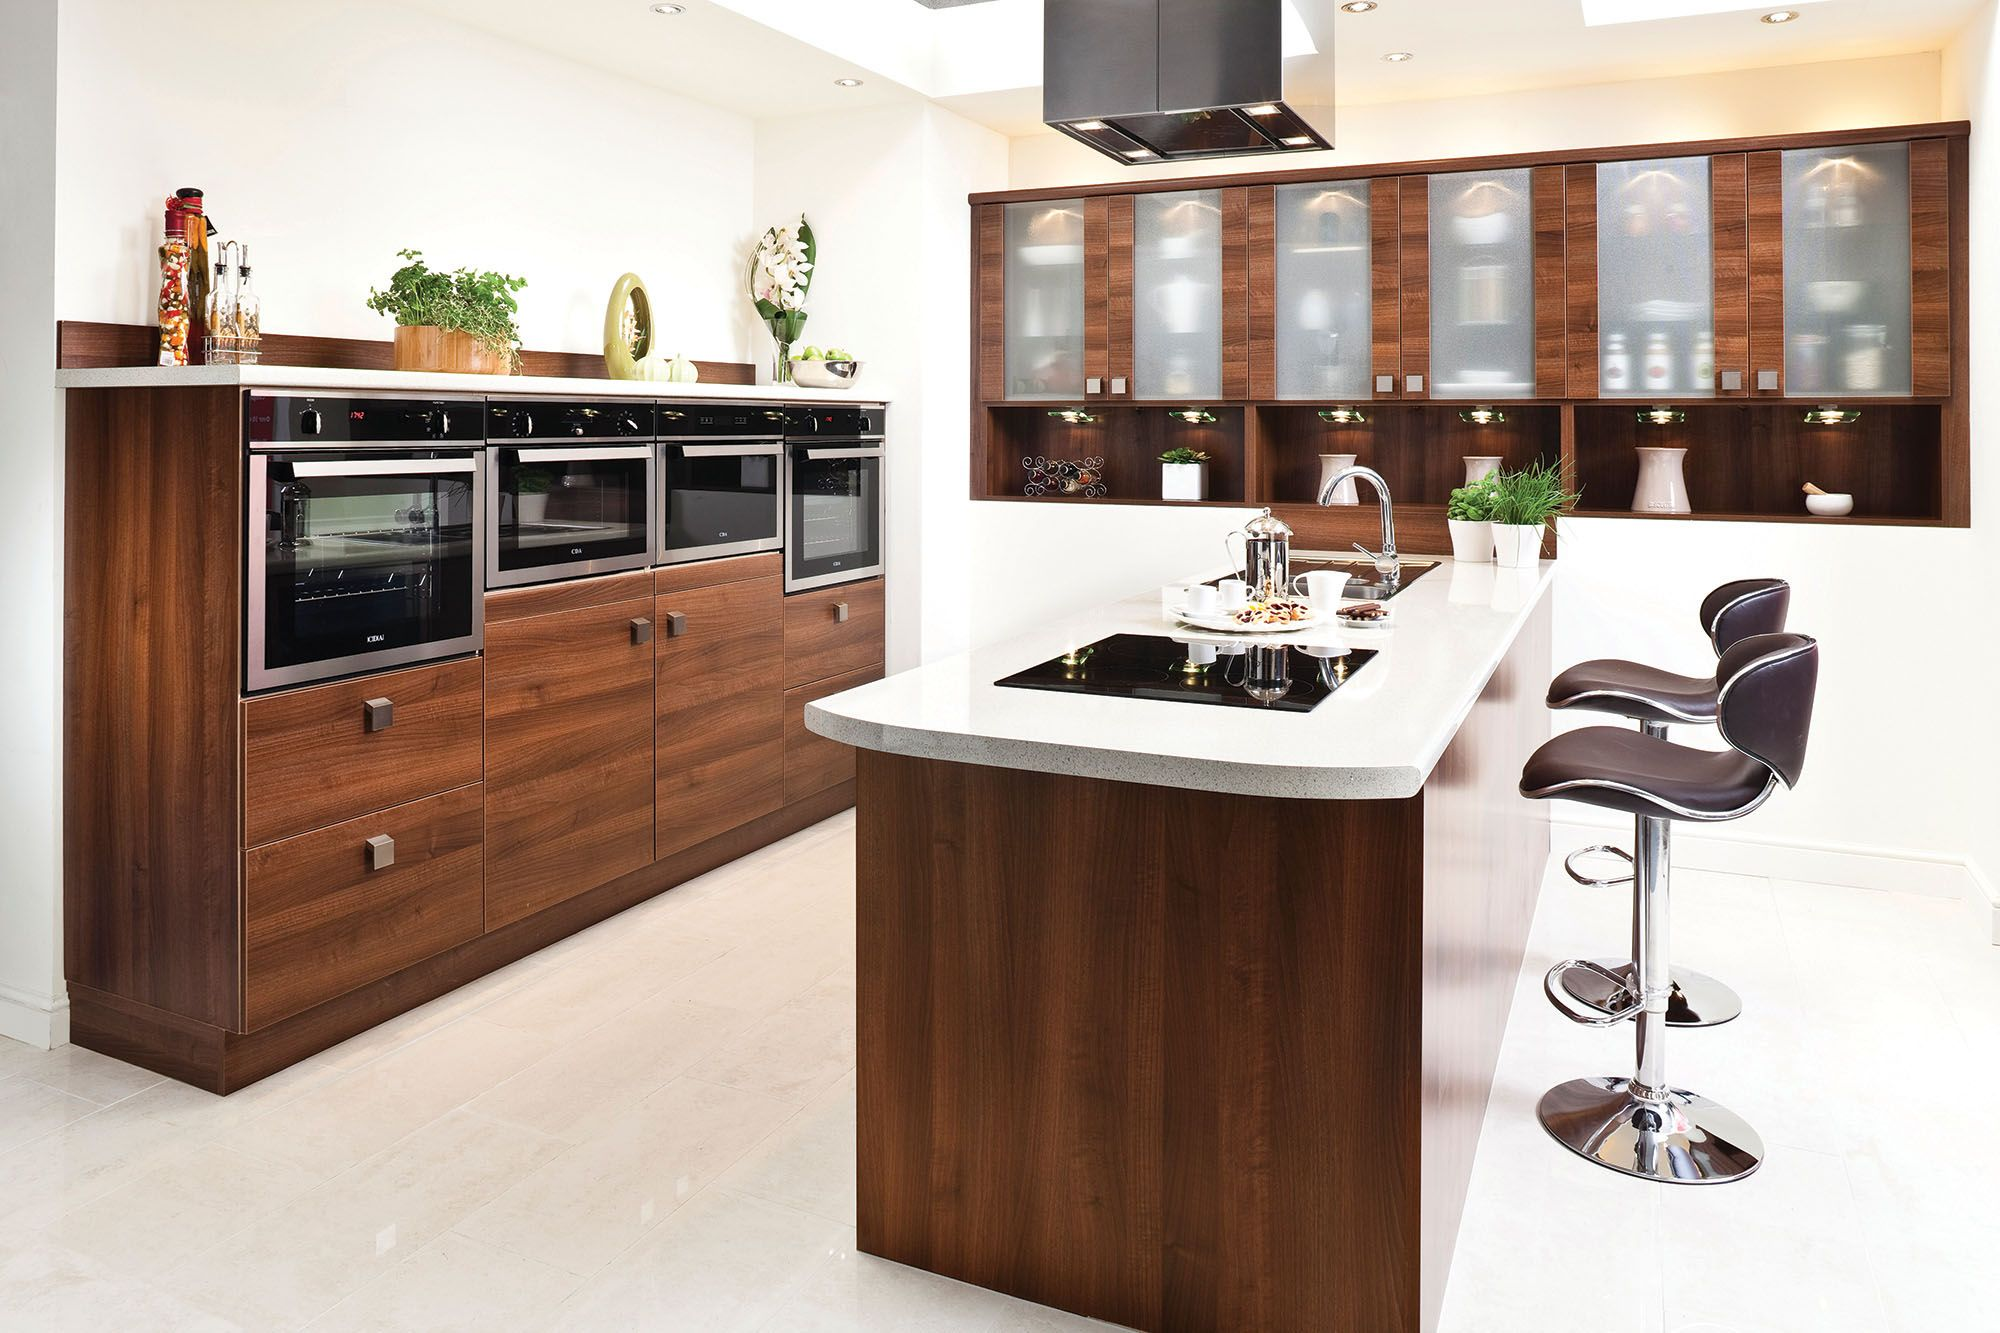 kitchens refference chair country island excellent apartment design for with ideas terrific kitchen minimalist concept small cabinets s colorfull stuff